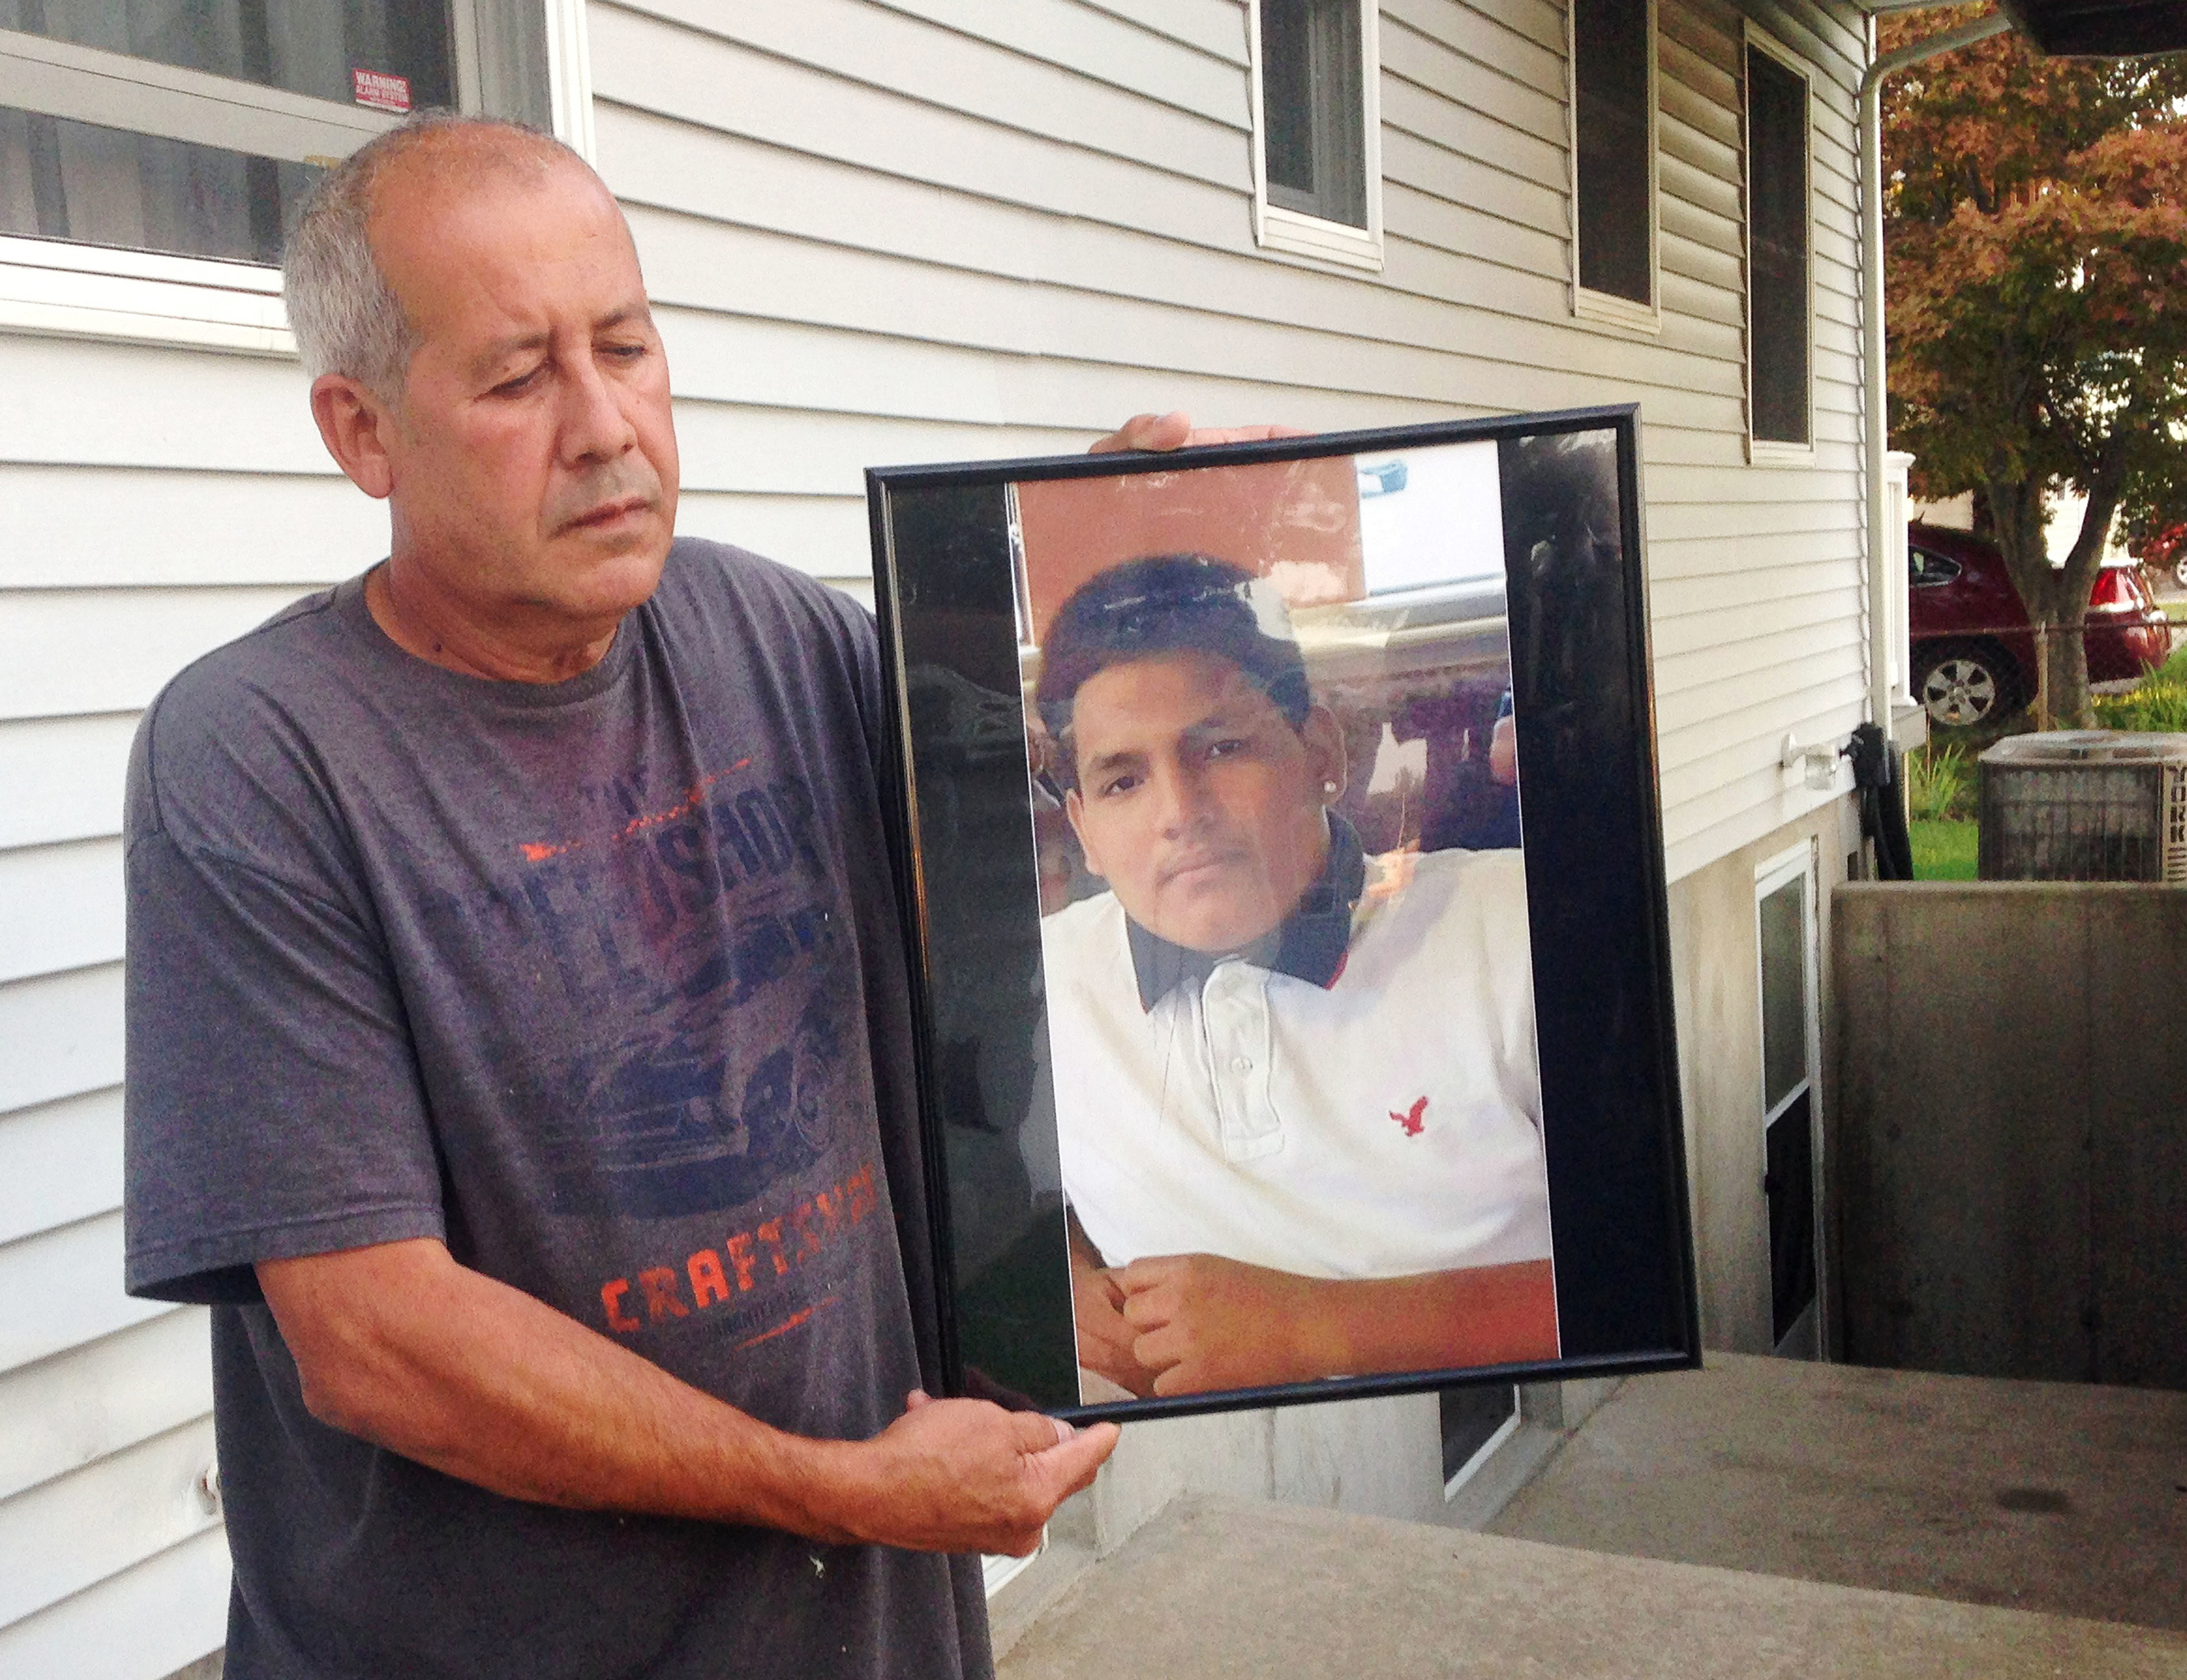 Abraham Chaparro holds a photograph of his murdered stepson, Miguel Garcia-Moran, outside his home in Brentwood, N.Y., on Sept. 27, 2016.